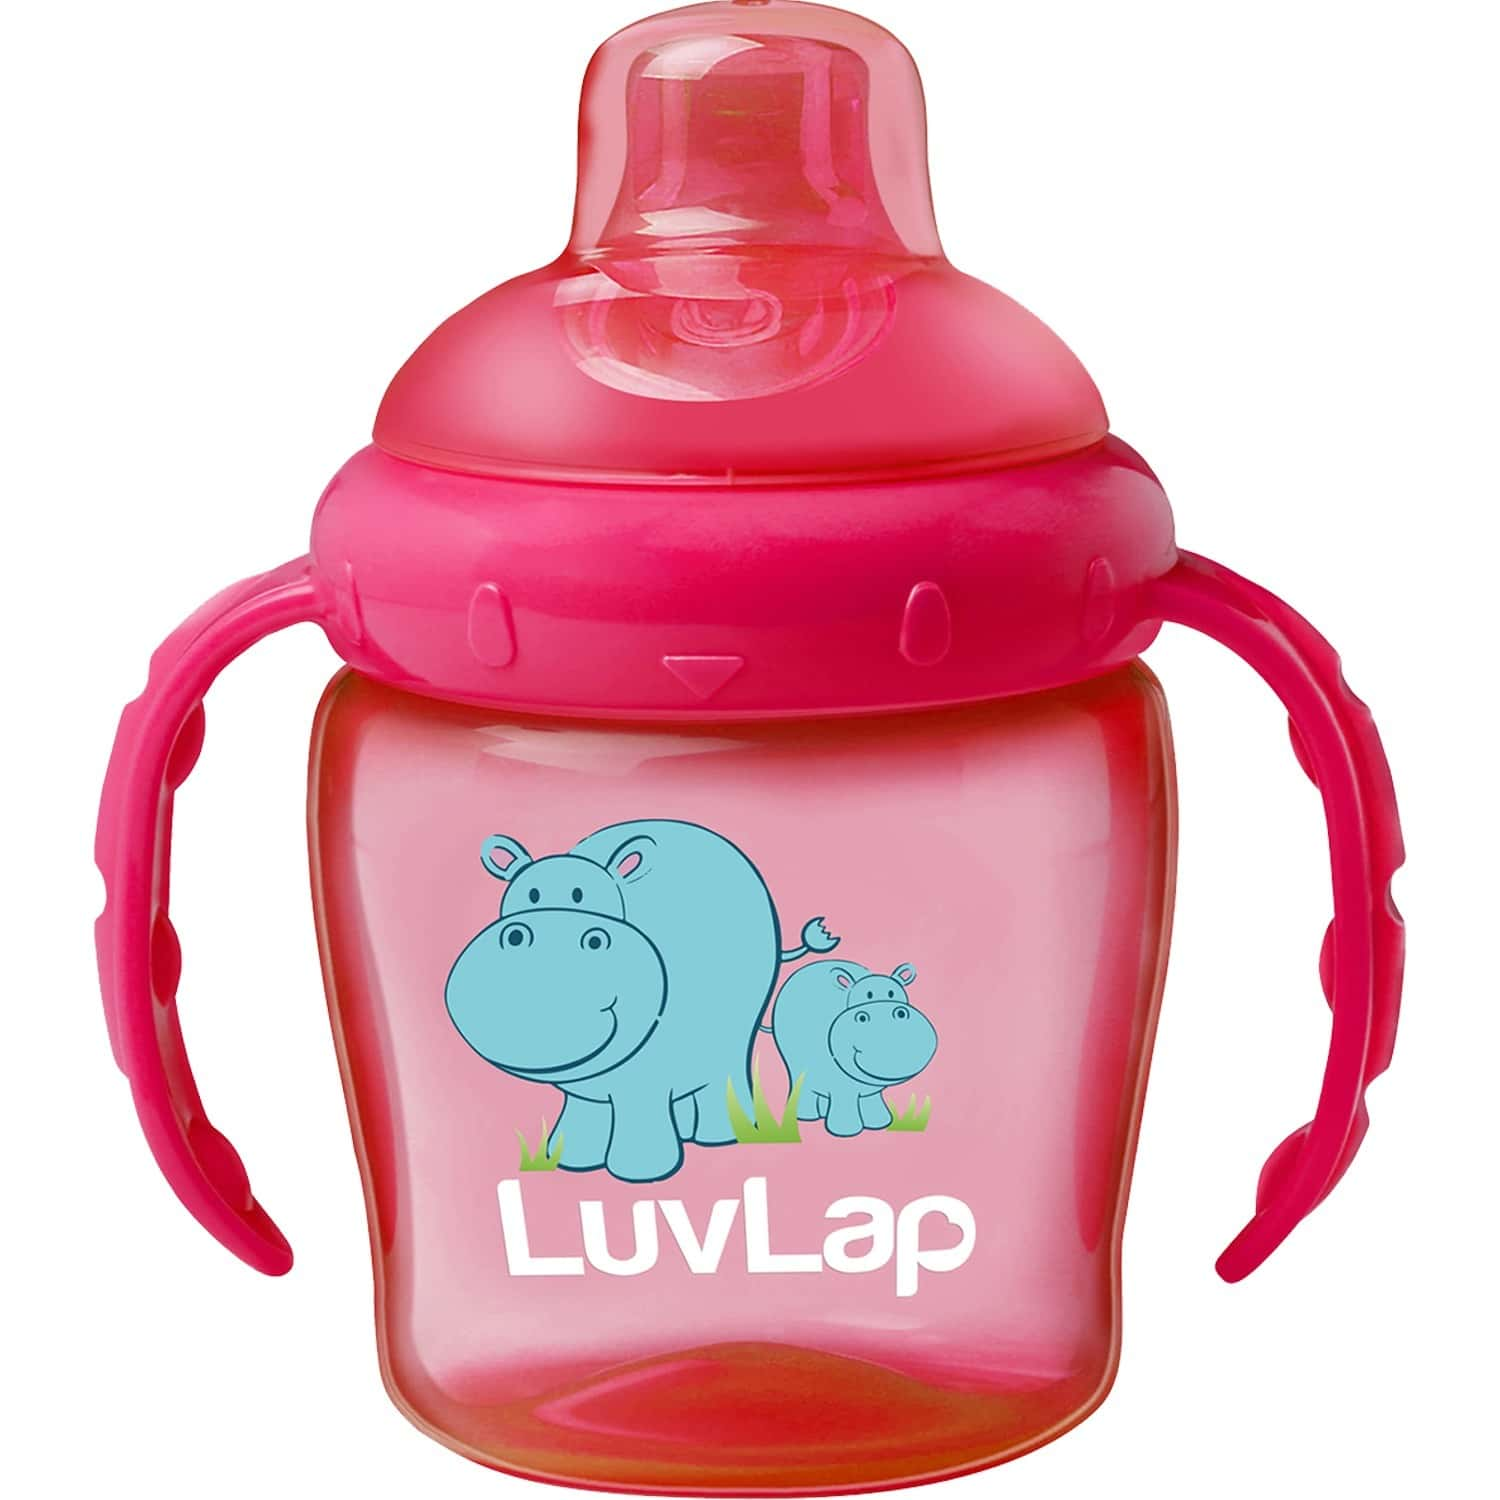 Luvlap Hippo Spout Sipper For Infant 225ml Anti-spill Sippy Cup With Soft Silicone Spout 6m+ (pink)